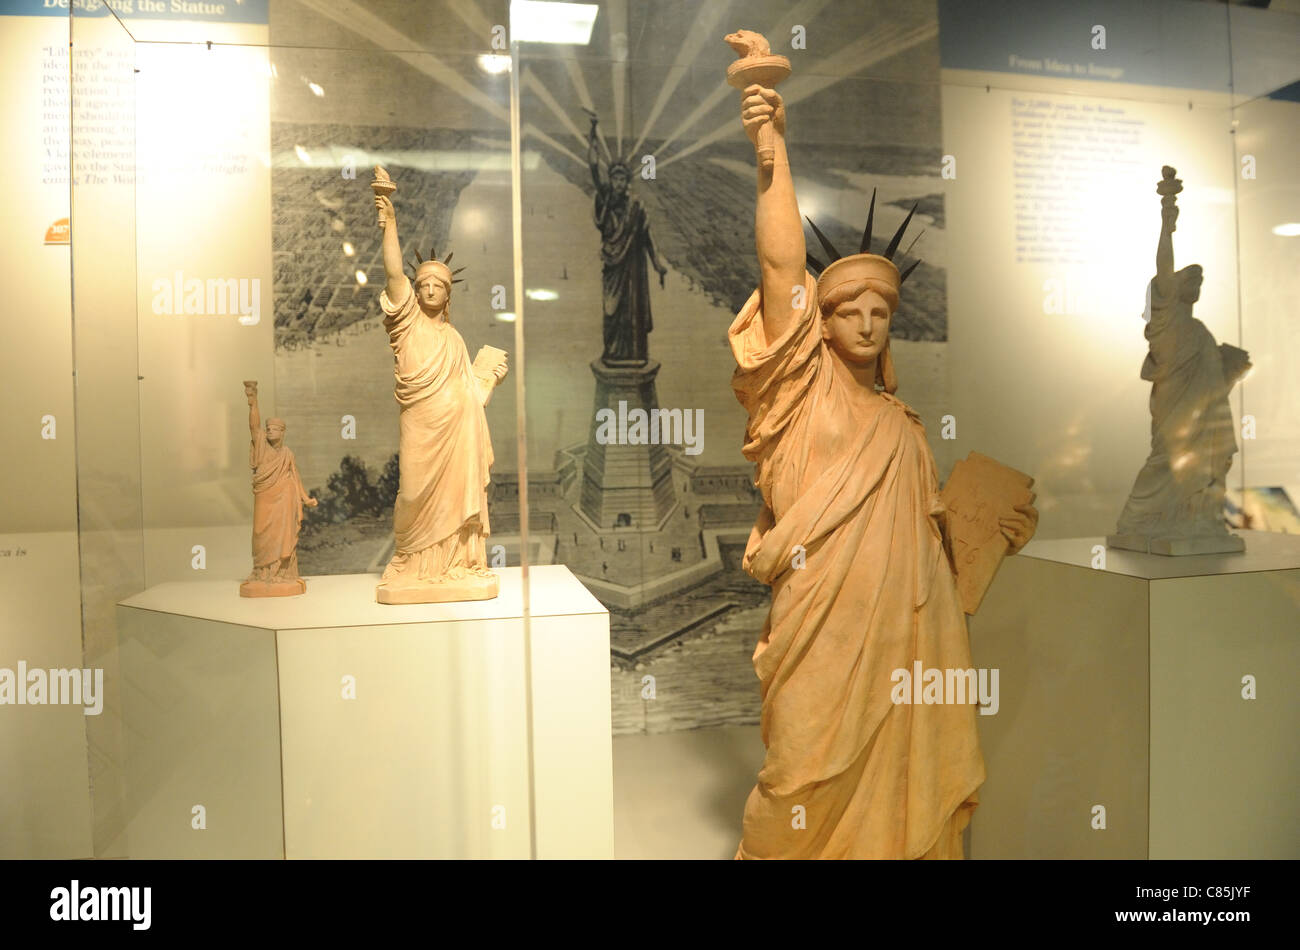 Frédéric Bartholdi worked out his ideas for the Statue of Liberty with small models now in the museum - Stock Image